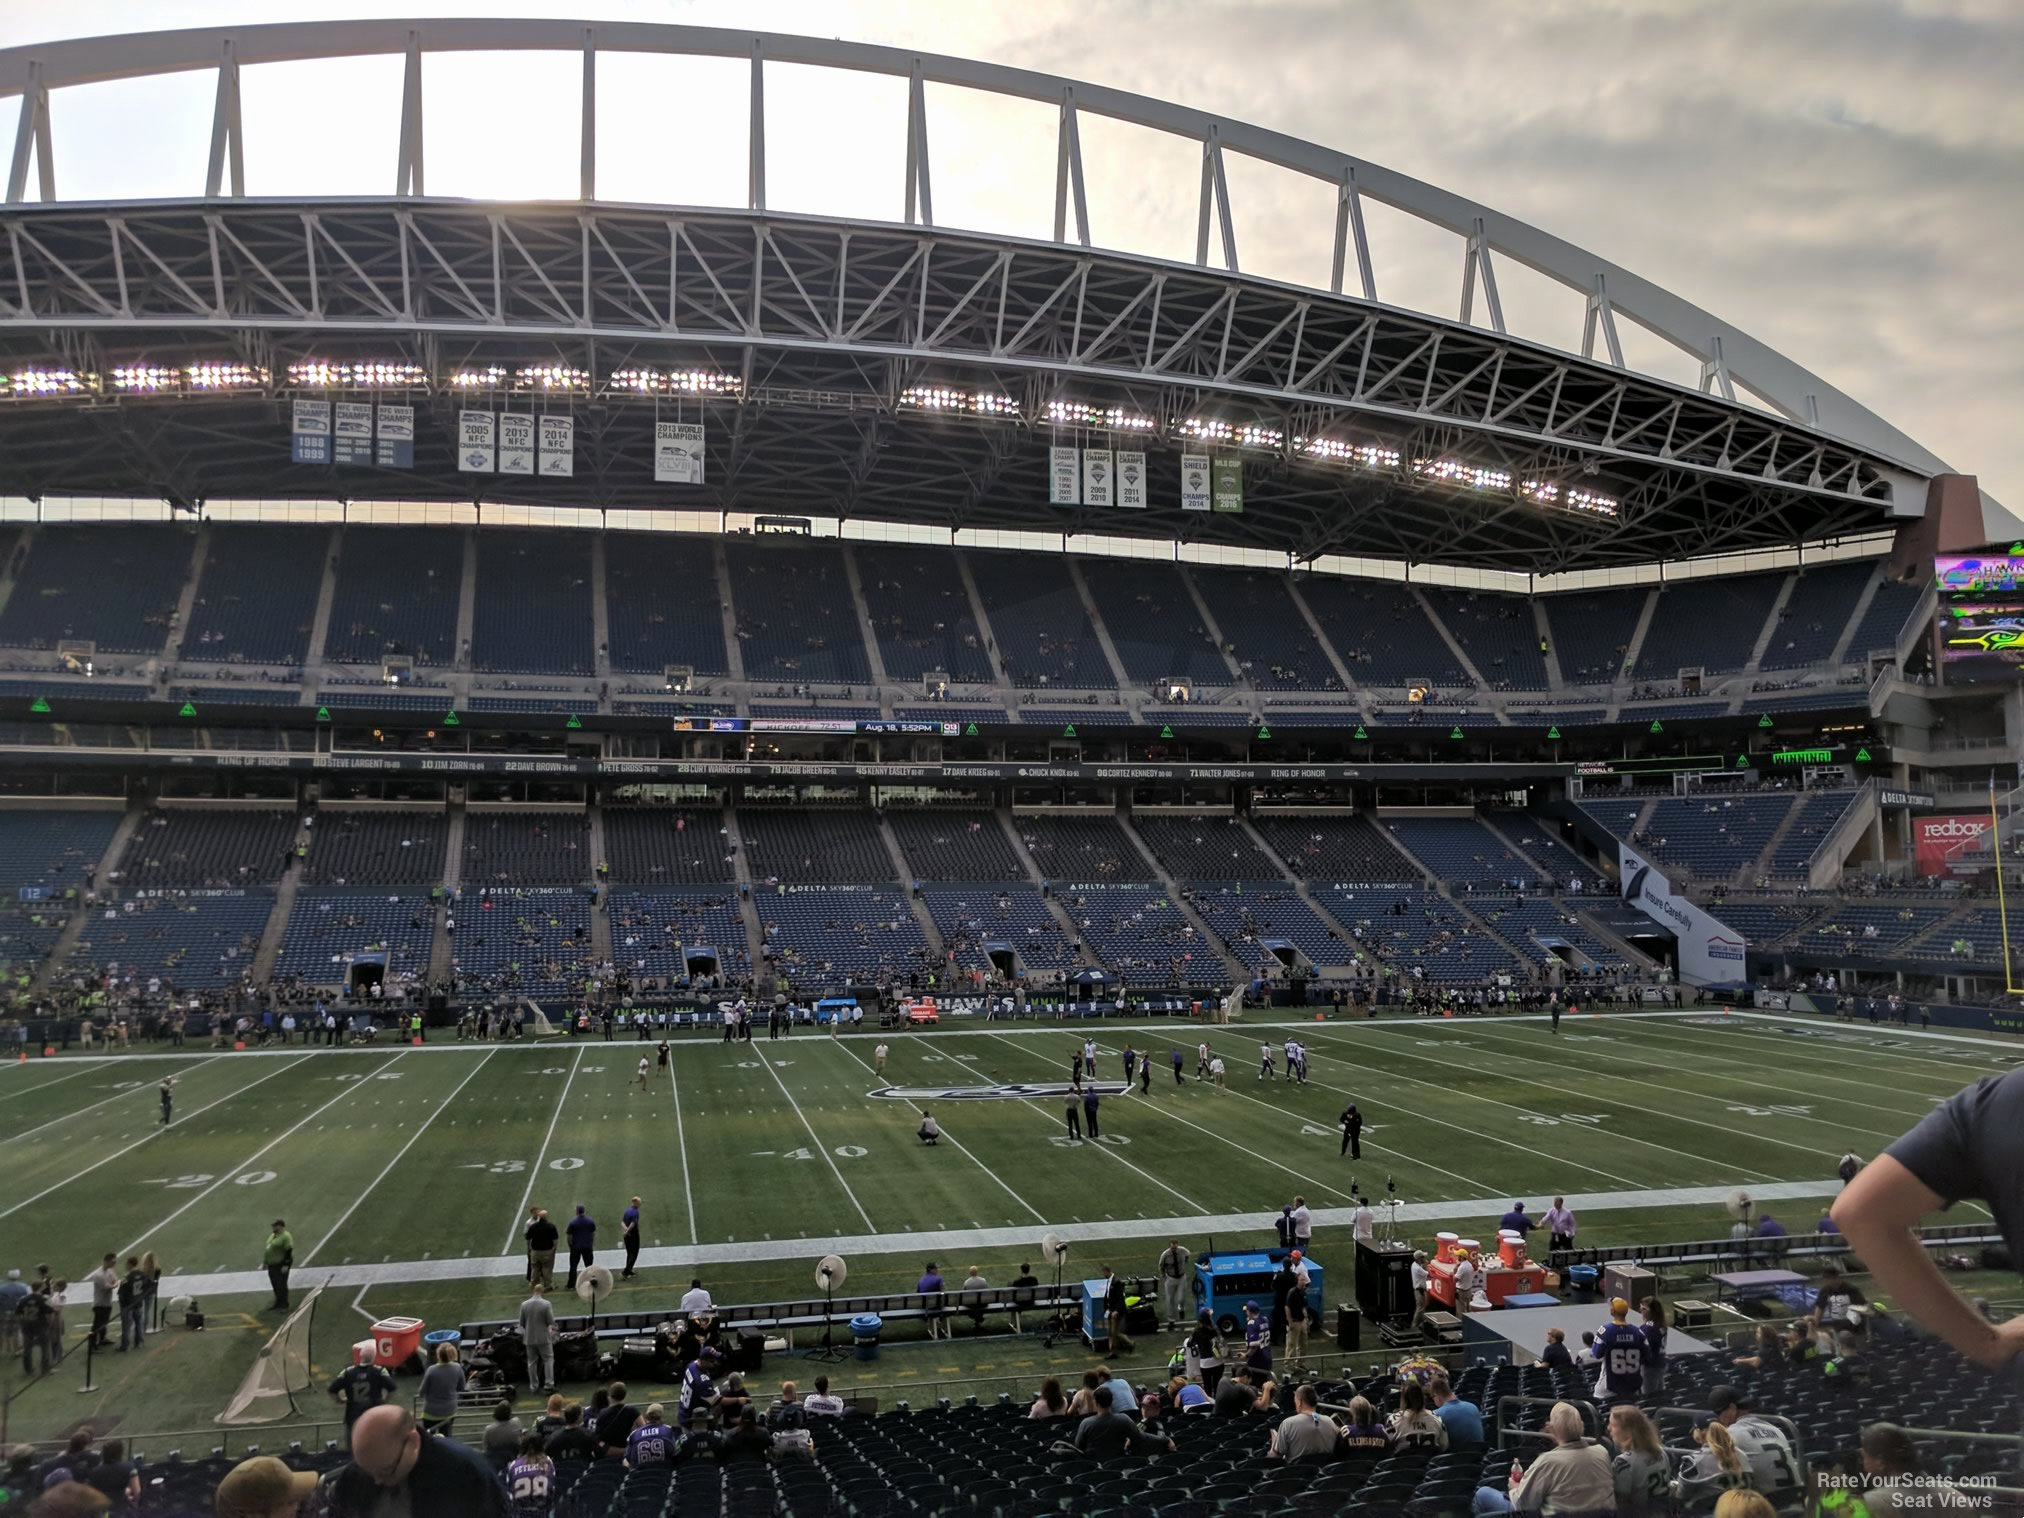 Centurylink Seating Chart with Rows and Seat Numbers Fresh Centurylink Field Section 210 Seattle Seahawks